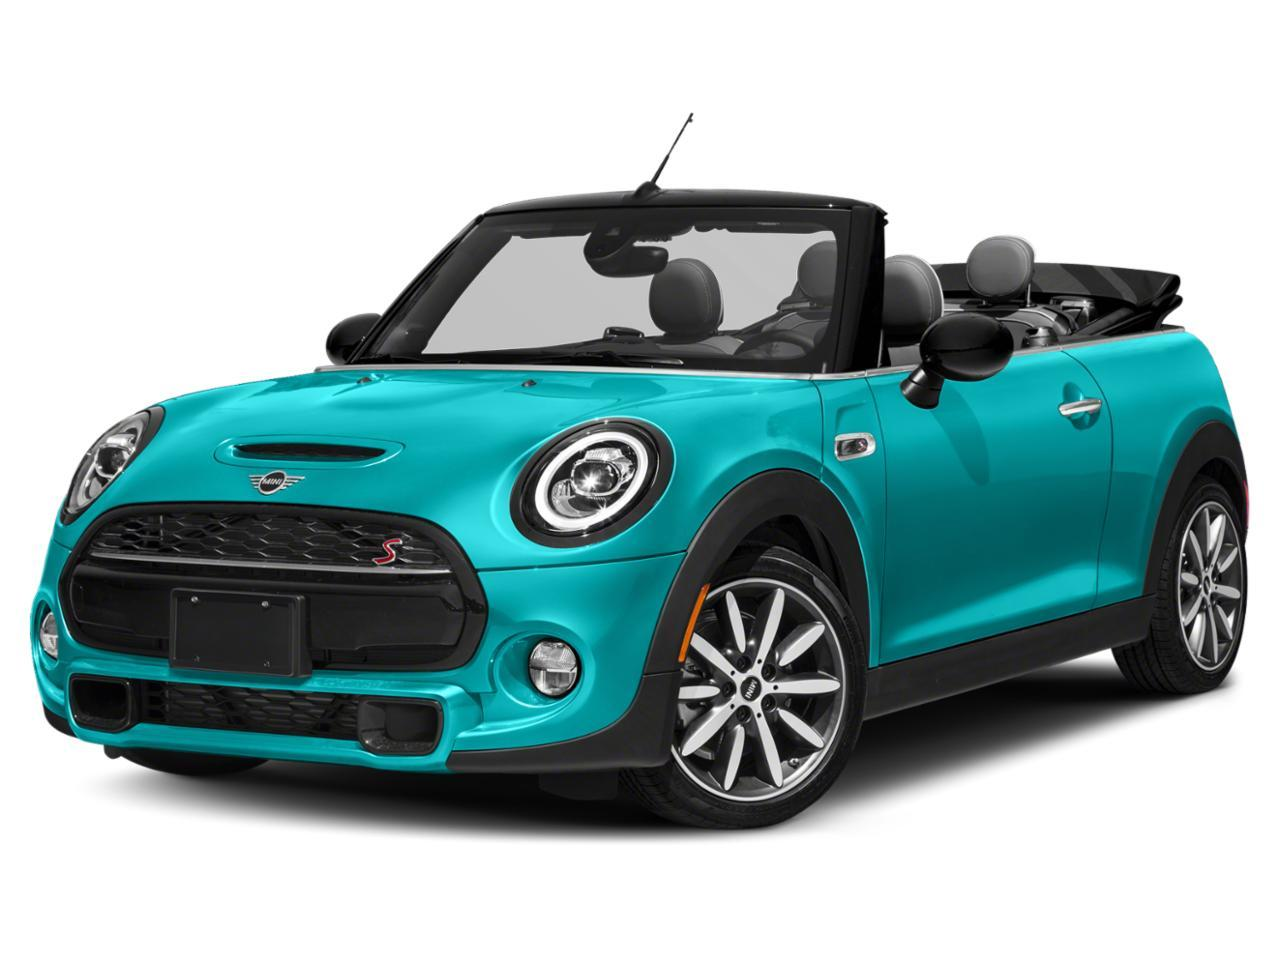 2021 MINI Cooper S Convertible Iconic Vehicle Photo in Appleton, WI 54913